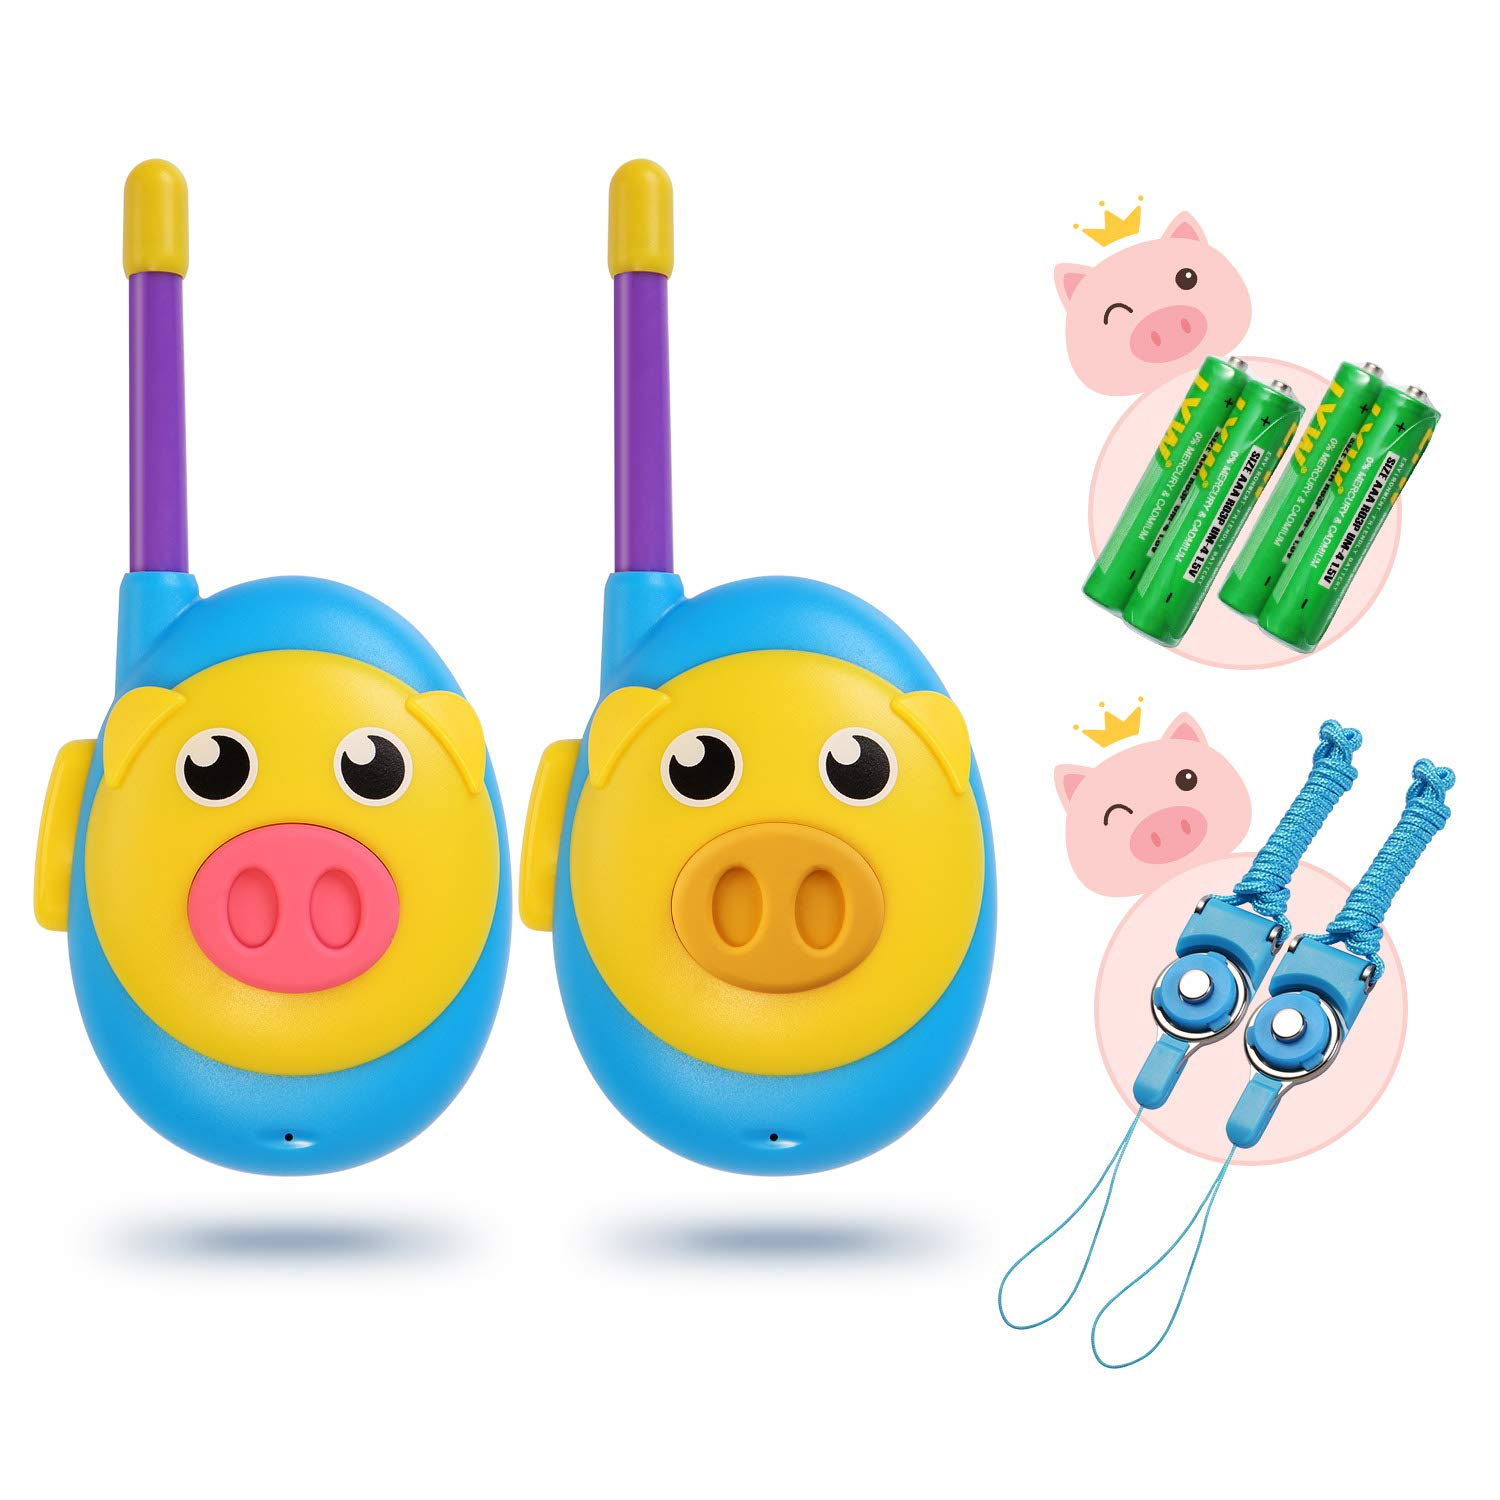 iRaddy KD10 Kids Walkie Talkies Toys for 3-12 Years Old Boys Girls, Cute Pre-Kindergarten toys Birthday Gift with Batteries, 2 Pack